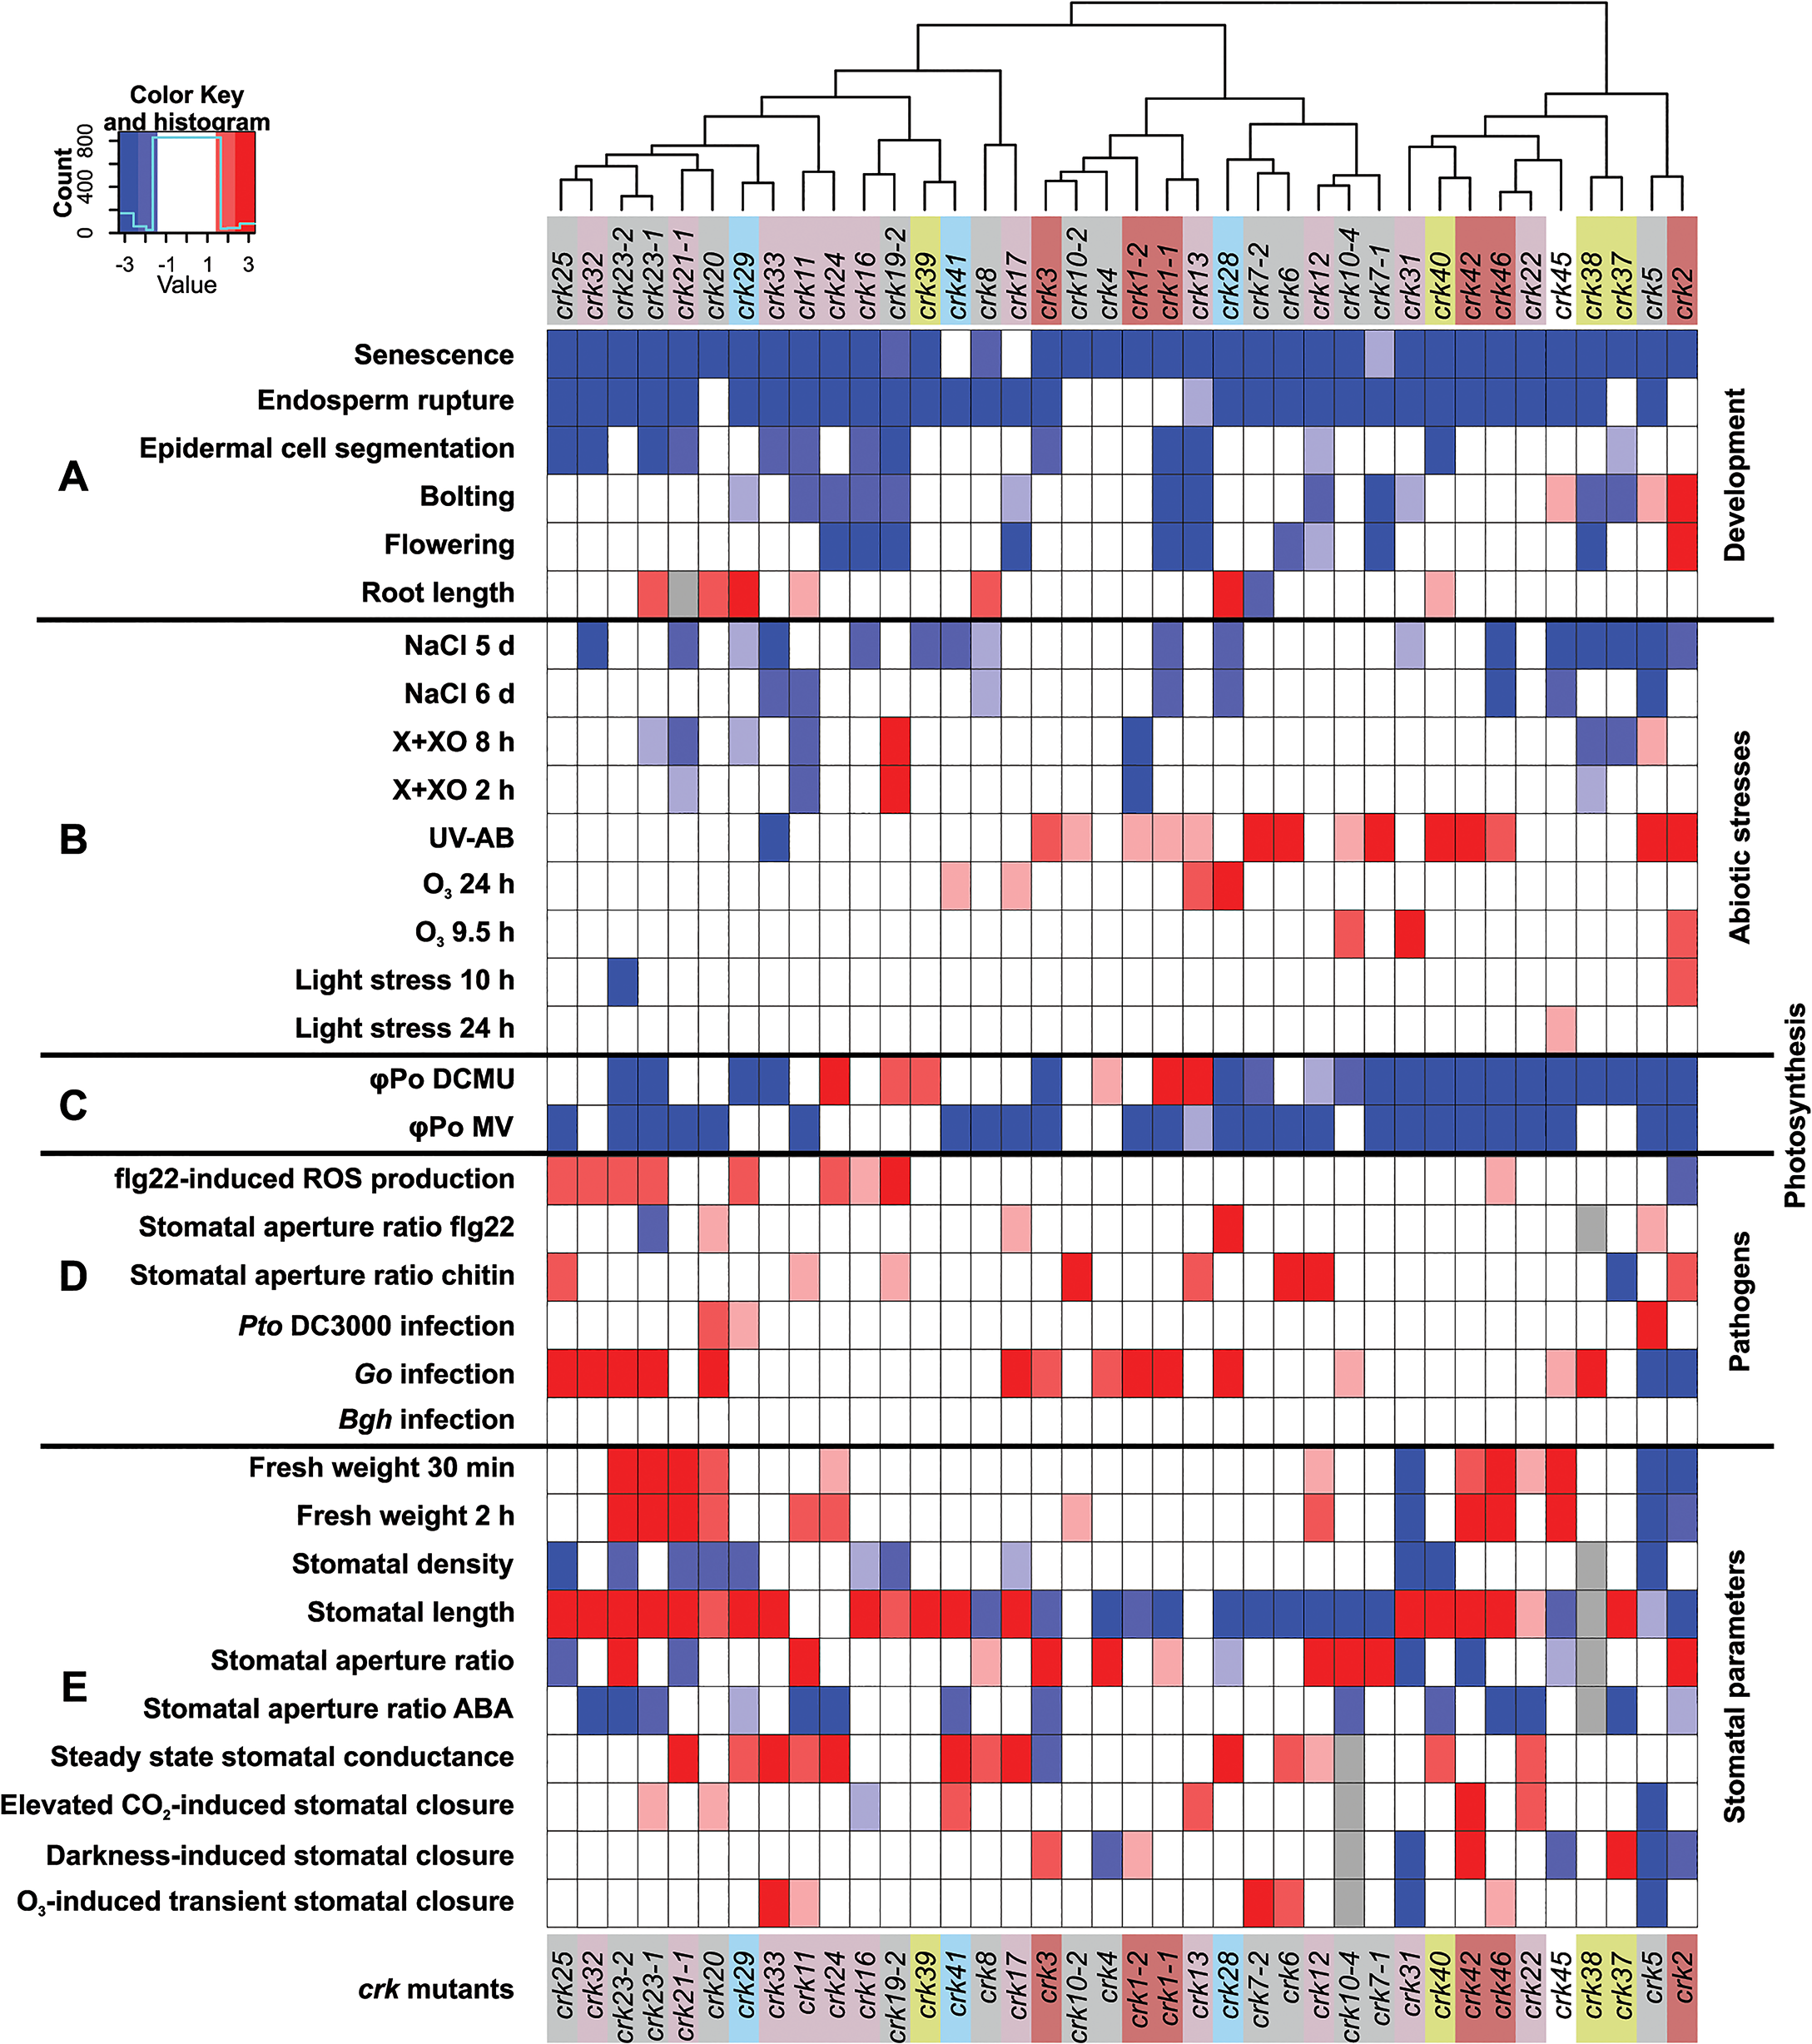 Integrated cluster analysis of <i>crk</i> mutant phenotypes.